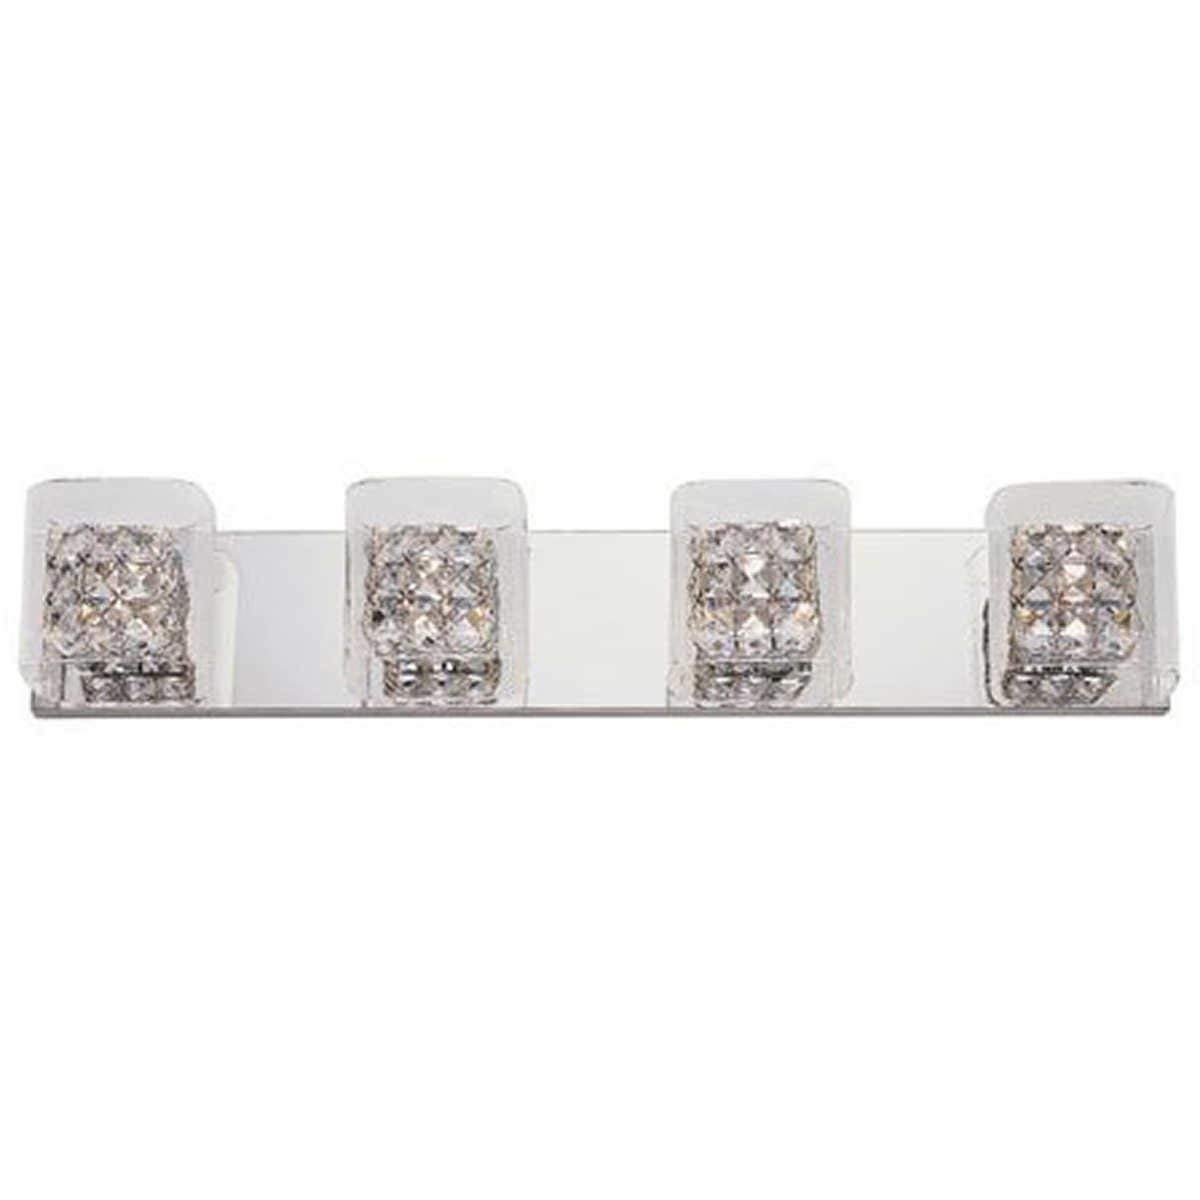 Artika 31 4-Light Crystal Cubes Vanity Wall Fixture in Chrome